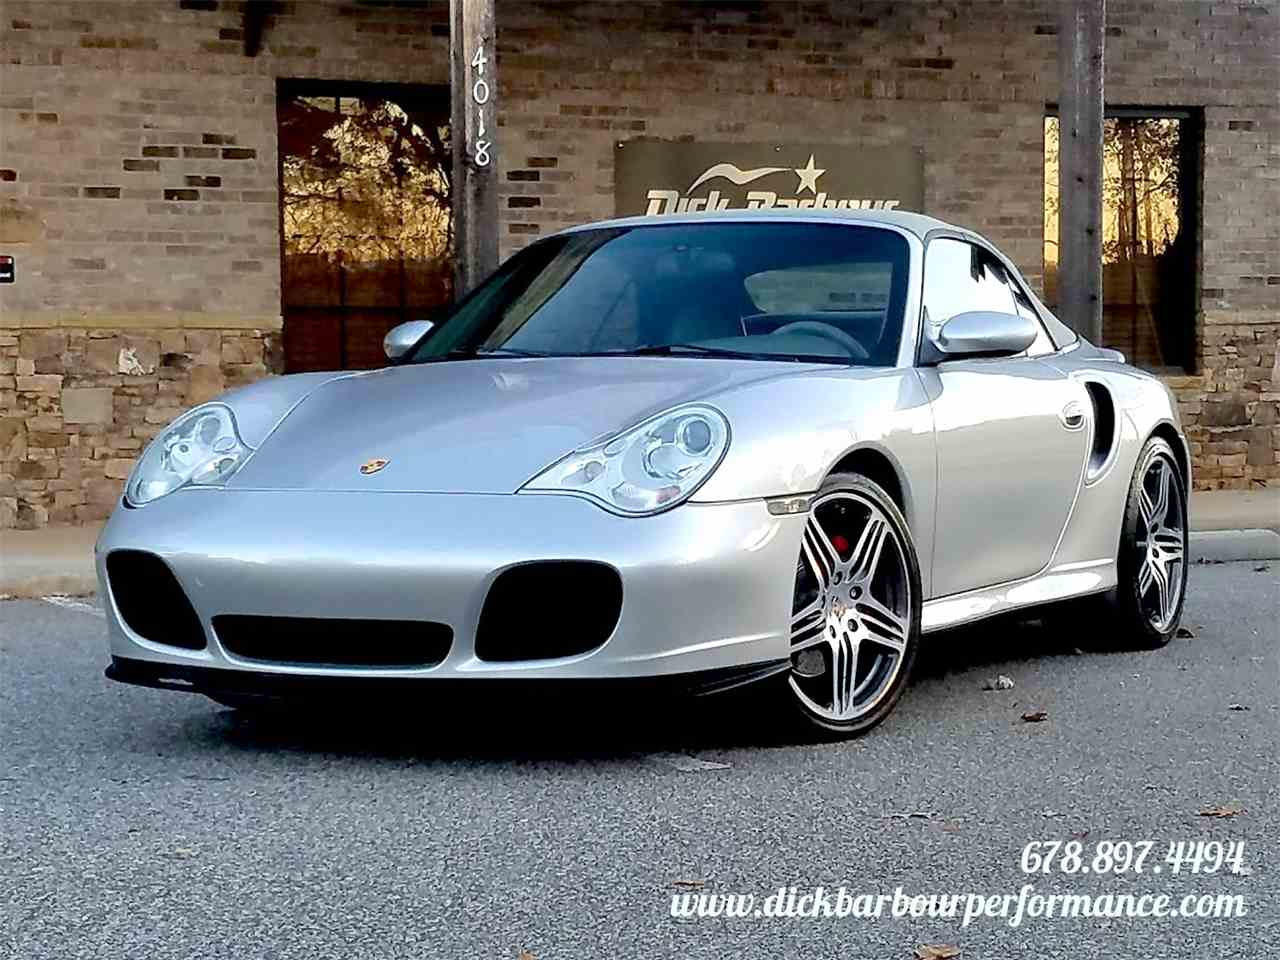 Large Picture of 2004 911 Carrera Turbo located in Georgia - $55,000.00 - MCDK